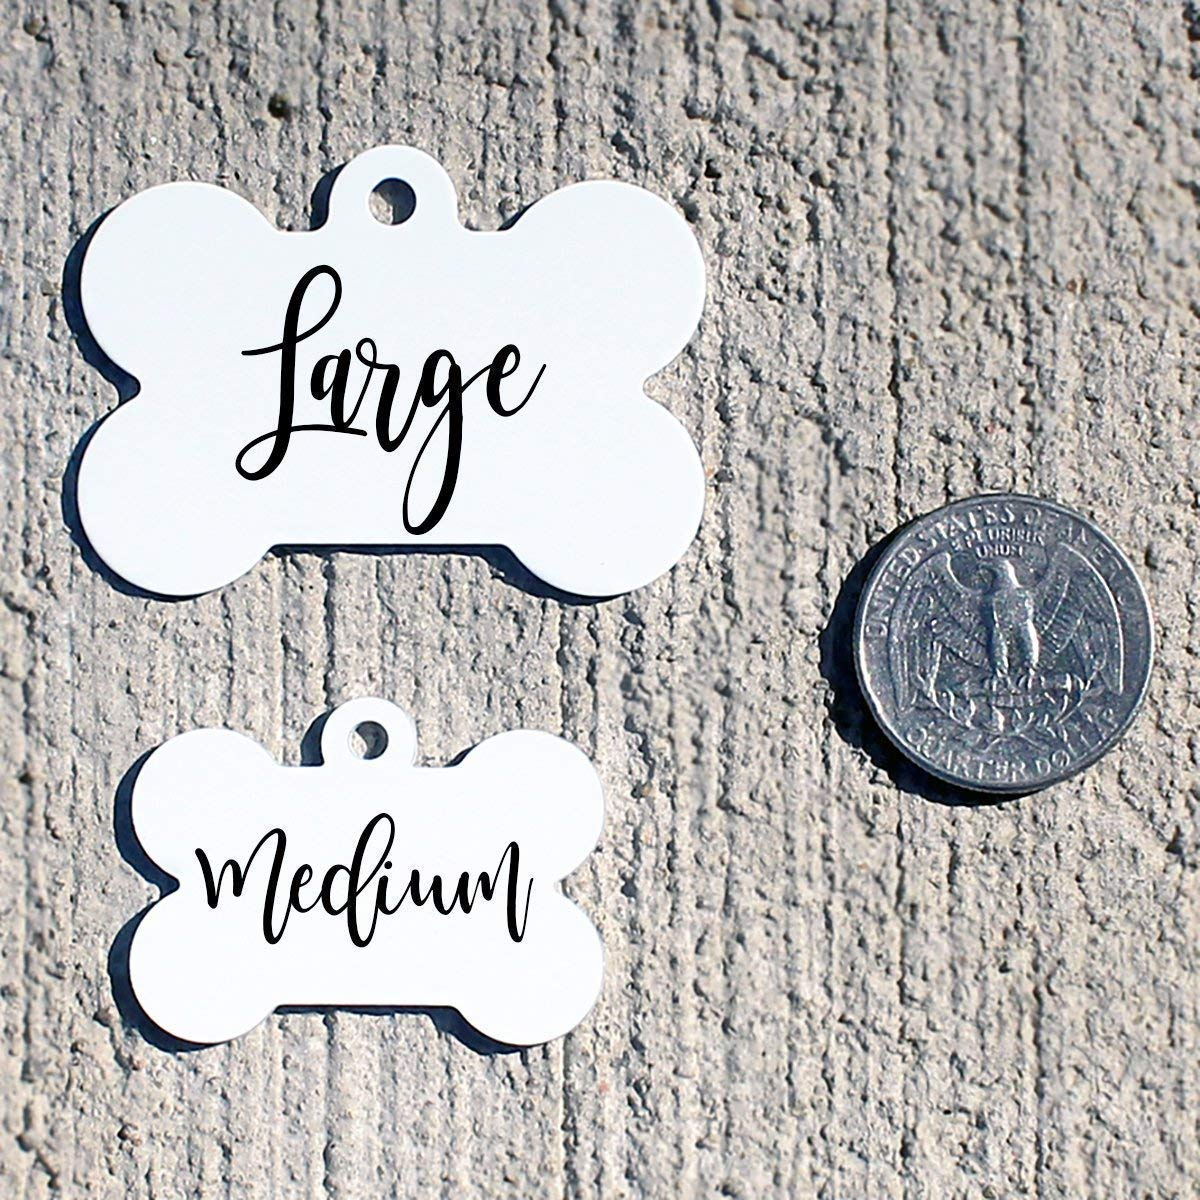 Custom Pet Tag Double Sided Name Tag Galaxy Space Tag Night Sky Dog Name Tag Personalized Dog Tag Personalized Pet Tag Dog ID Tag